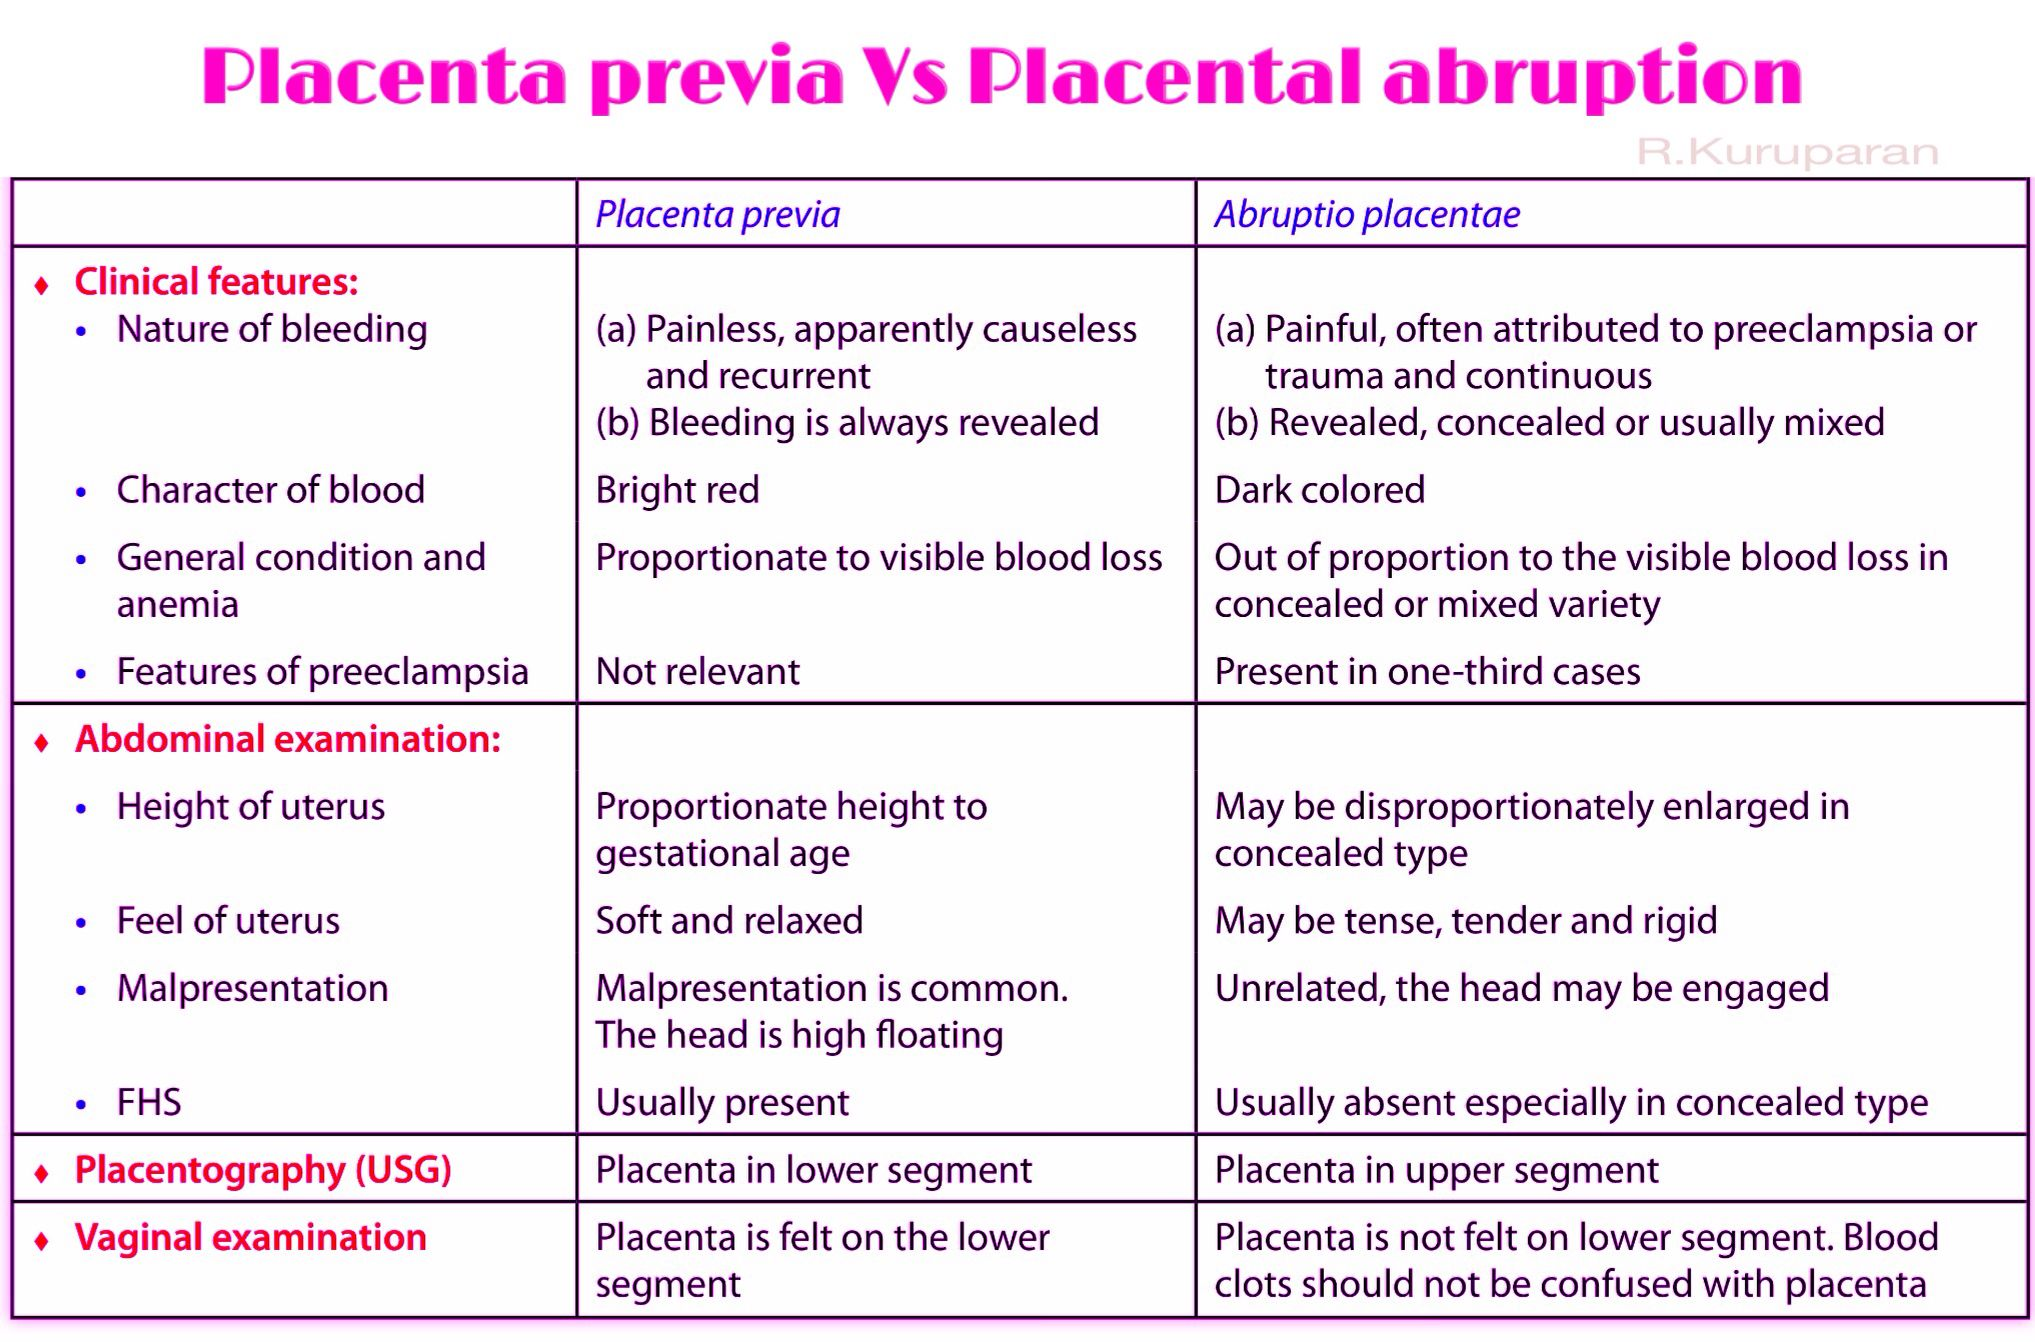 Placental abruption: causes and effects